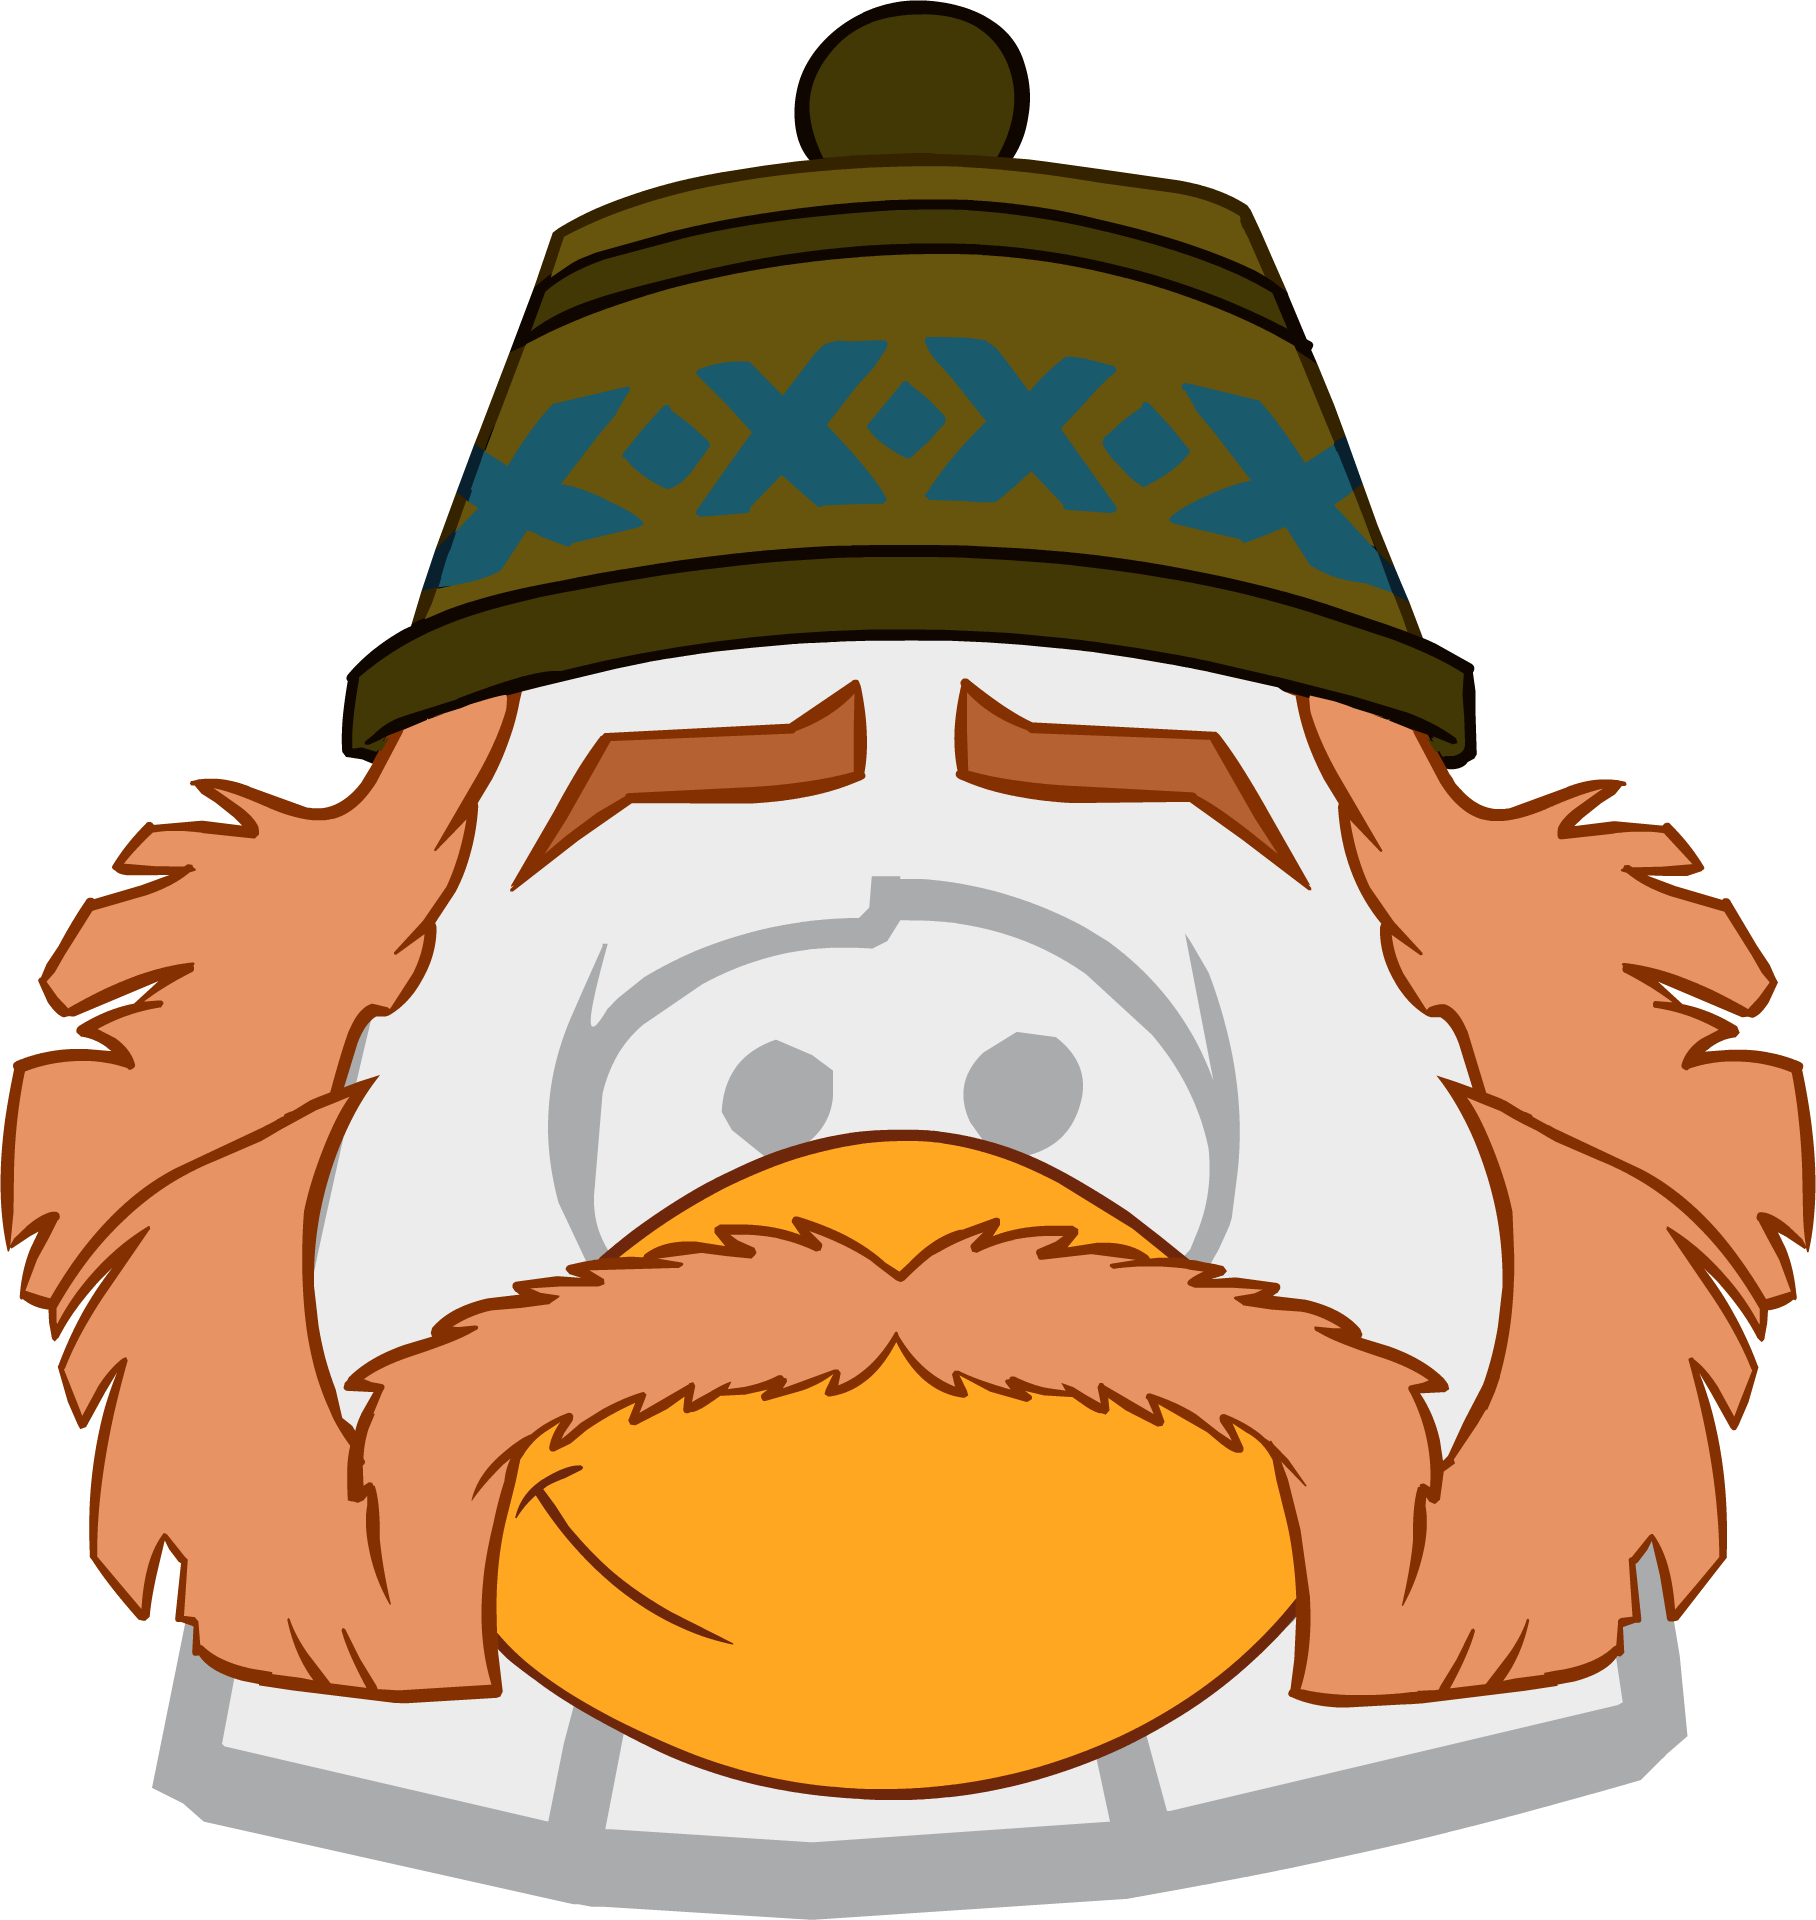 The club penguin wiki. Frozen clipart oaken